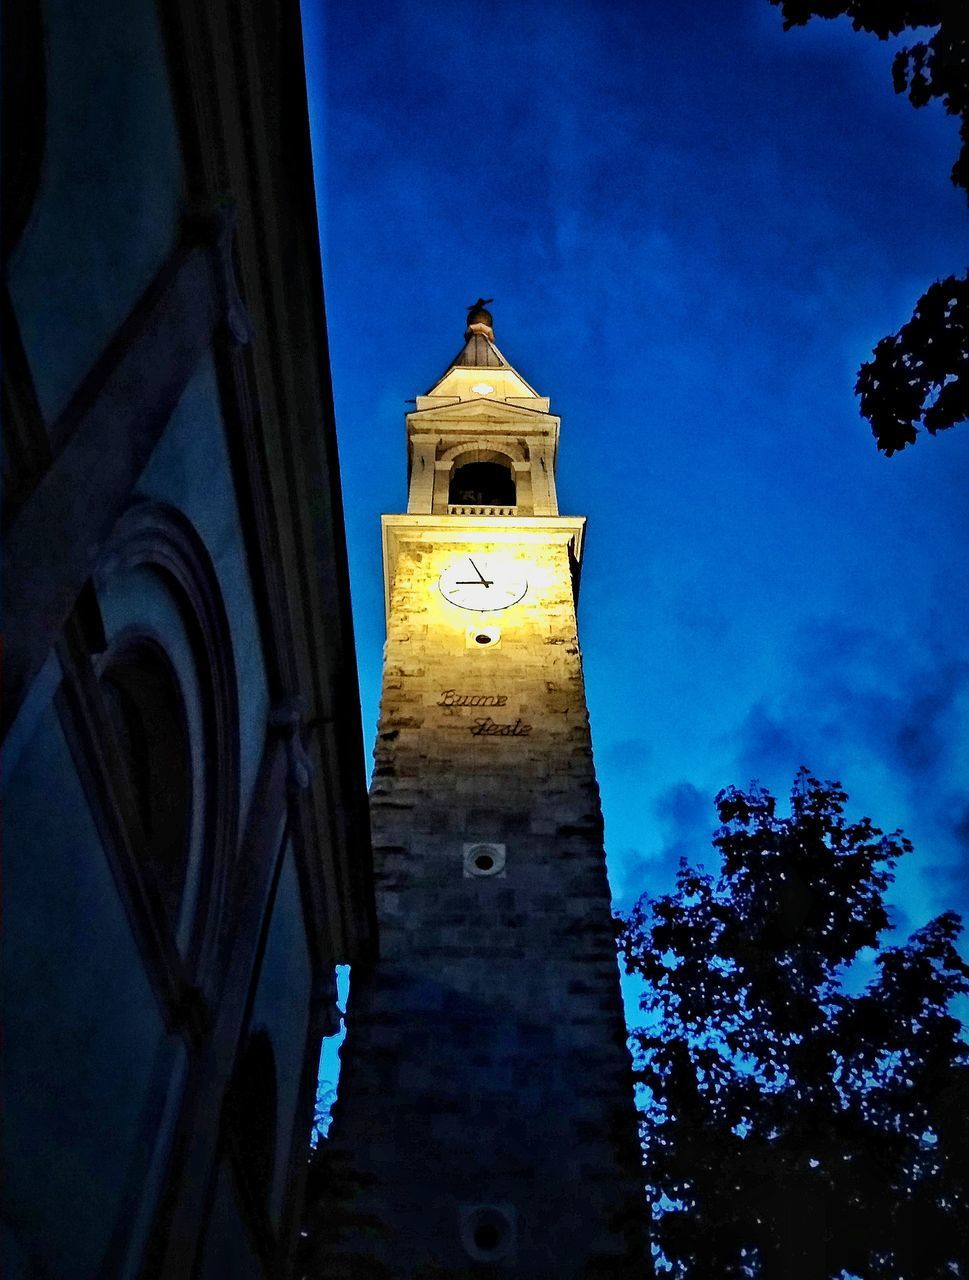 LOW ANGLE VIEW OF CLOCK TOWER AMIDST BUILDING AGAINST SKY